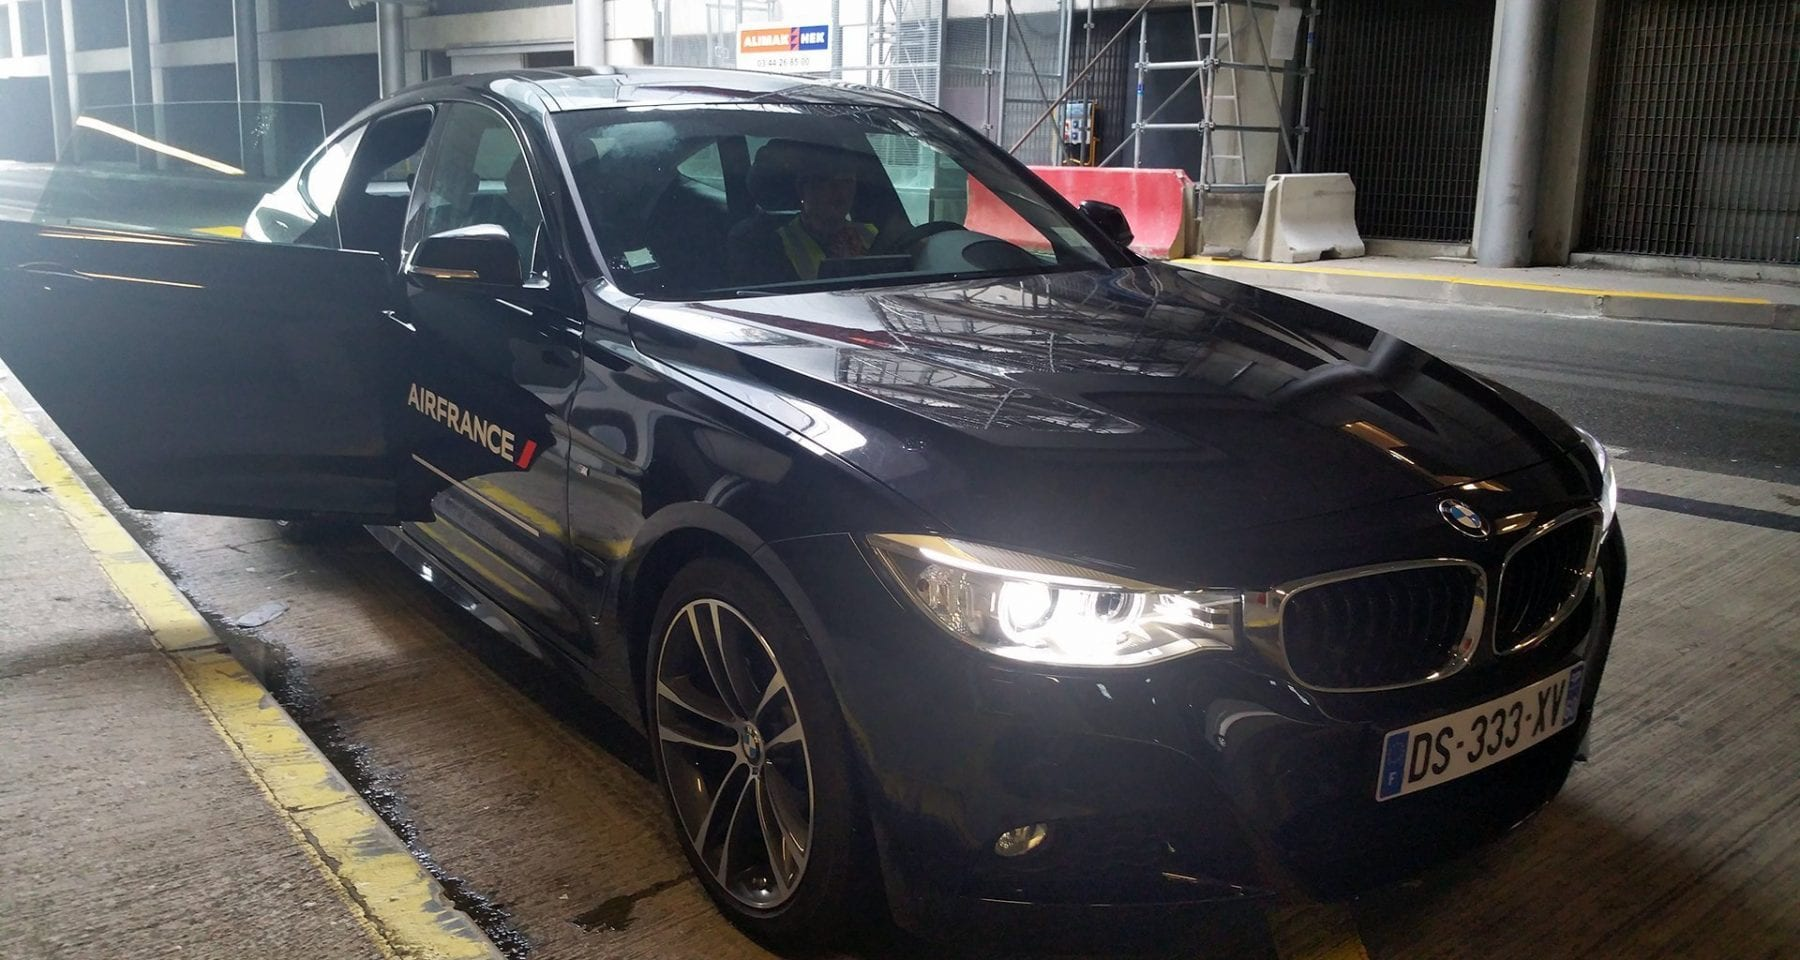 Paris airport Air France BMW service